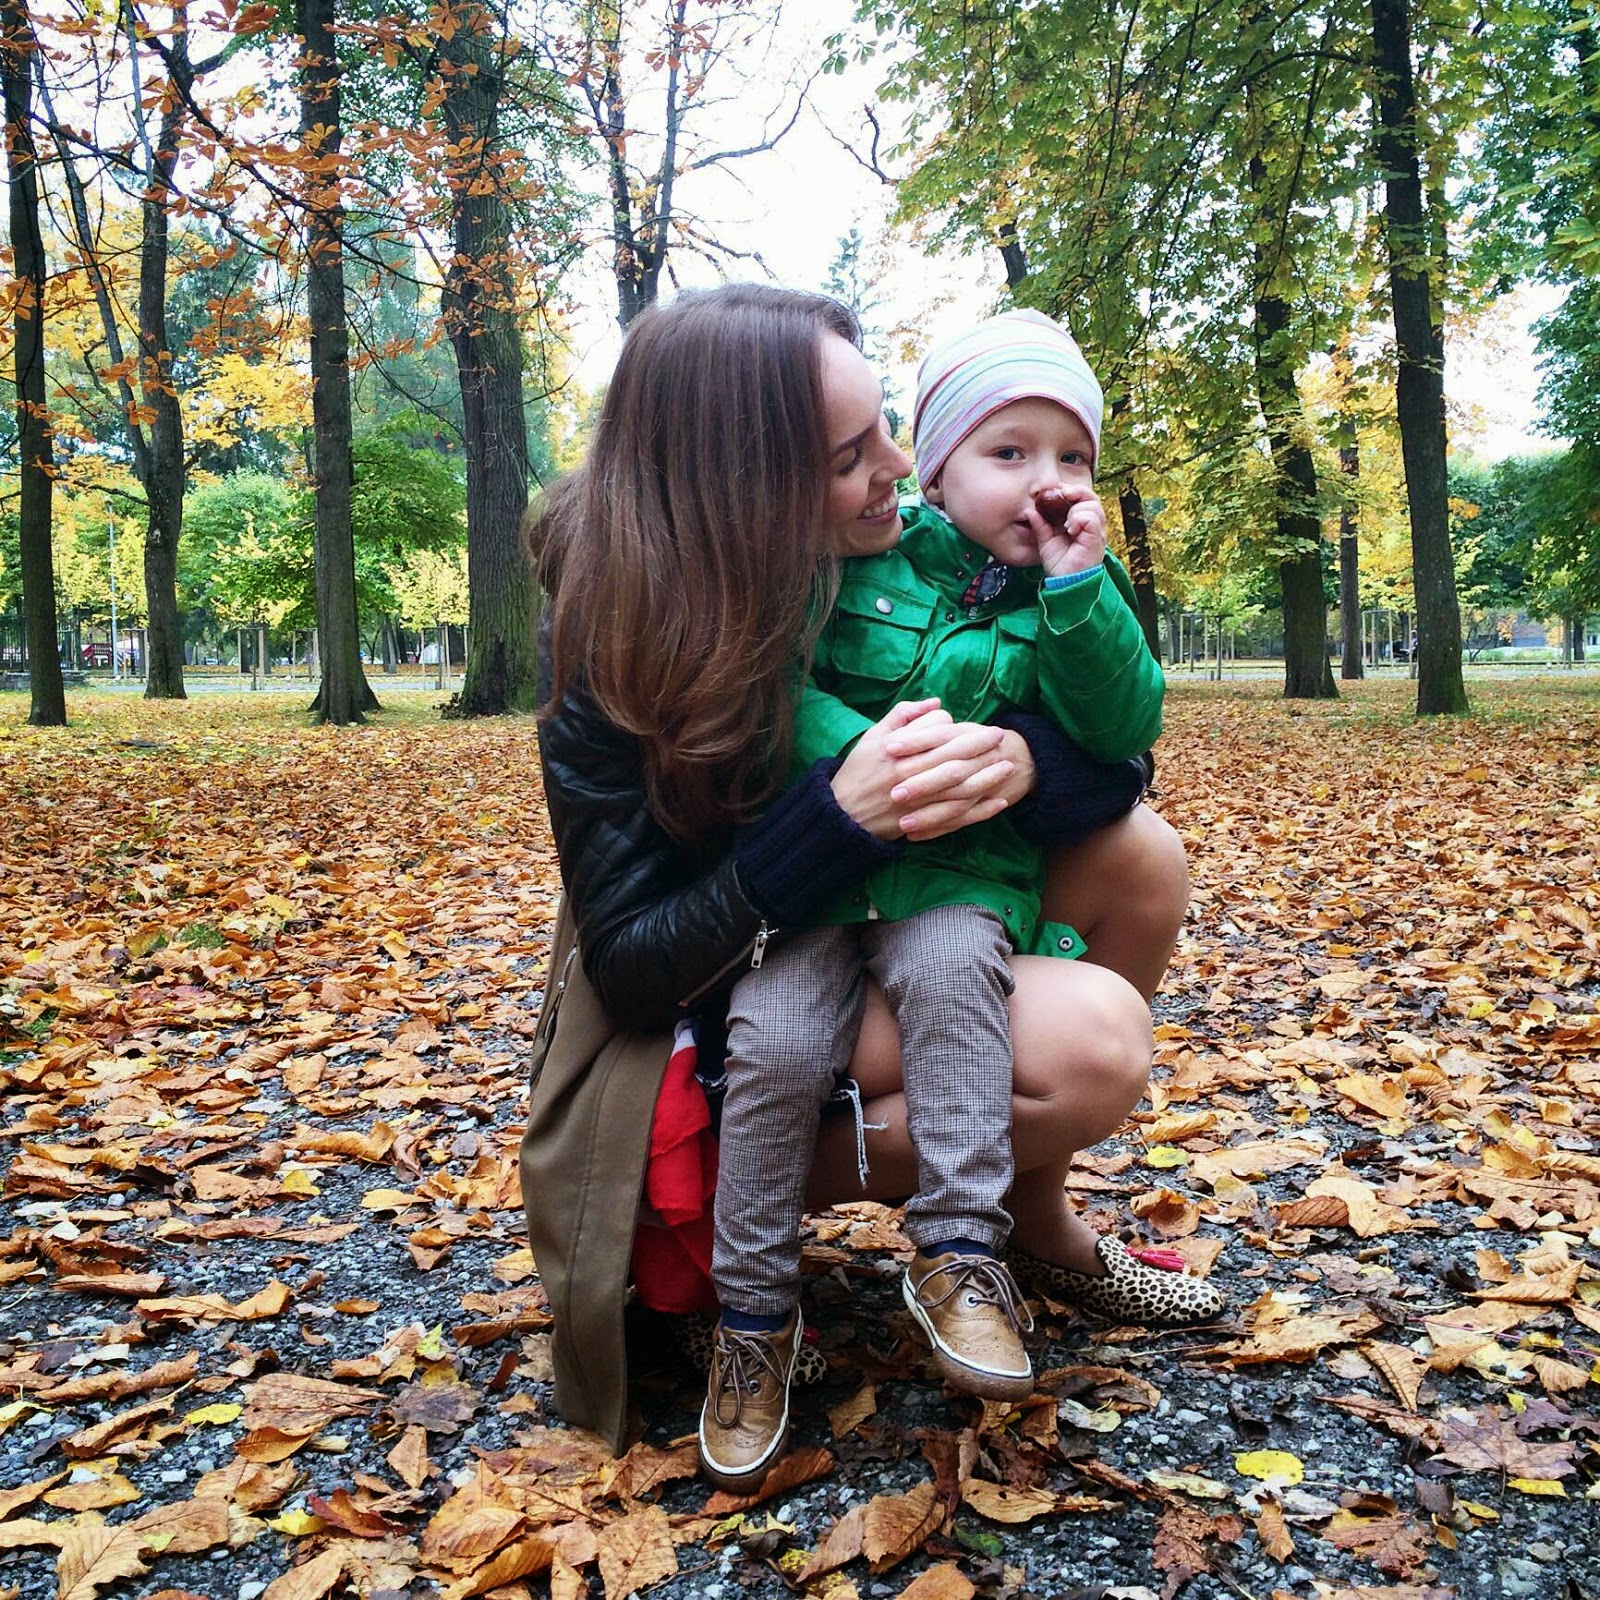 fall-leaves-park-colourful-mother-toddler